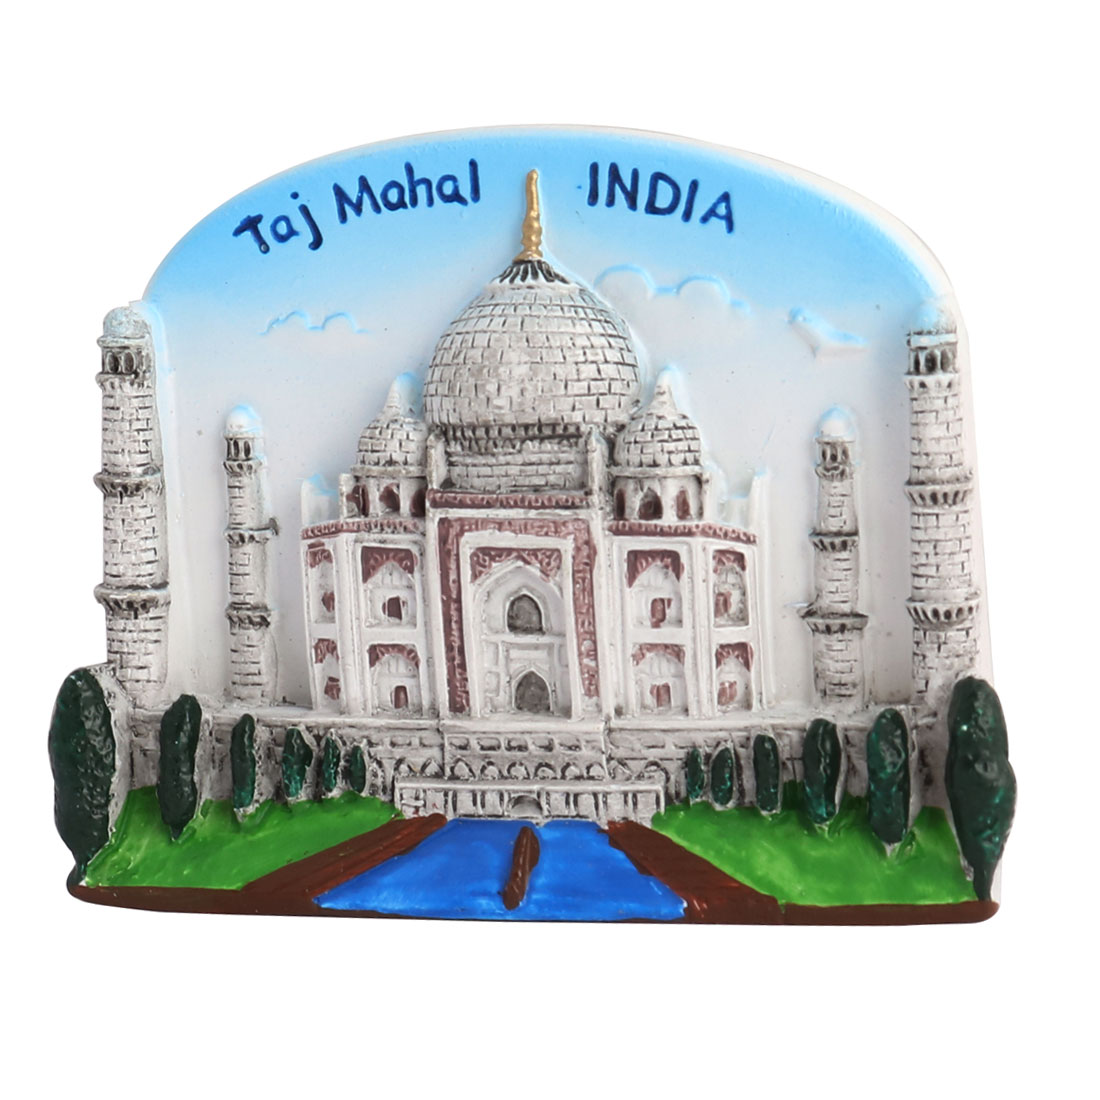 Household Kitchen Fridge Resin India Taj Mahal Scene Souvenir Decorative Magnet Sticker